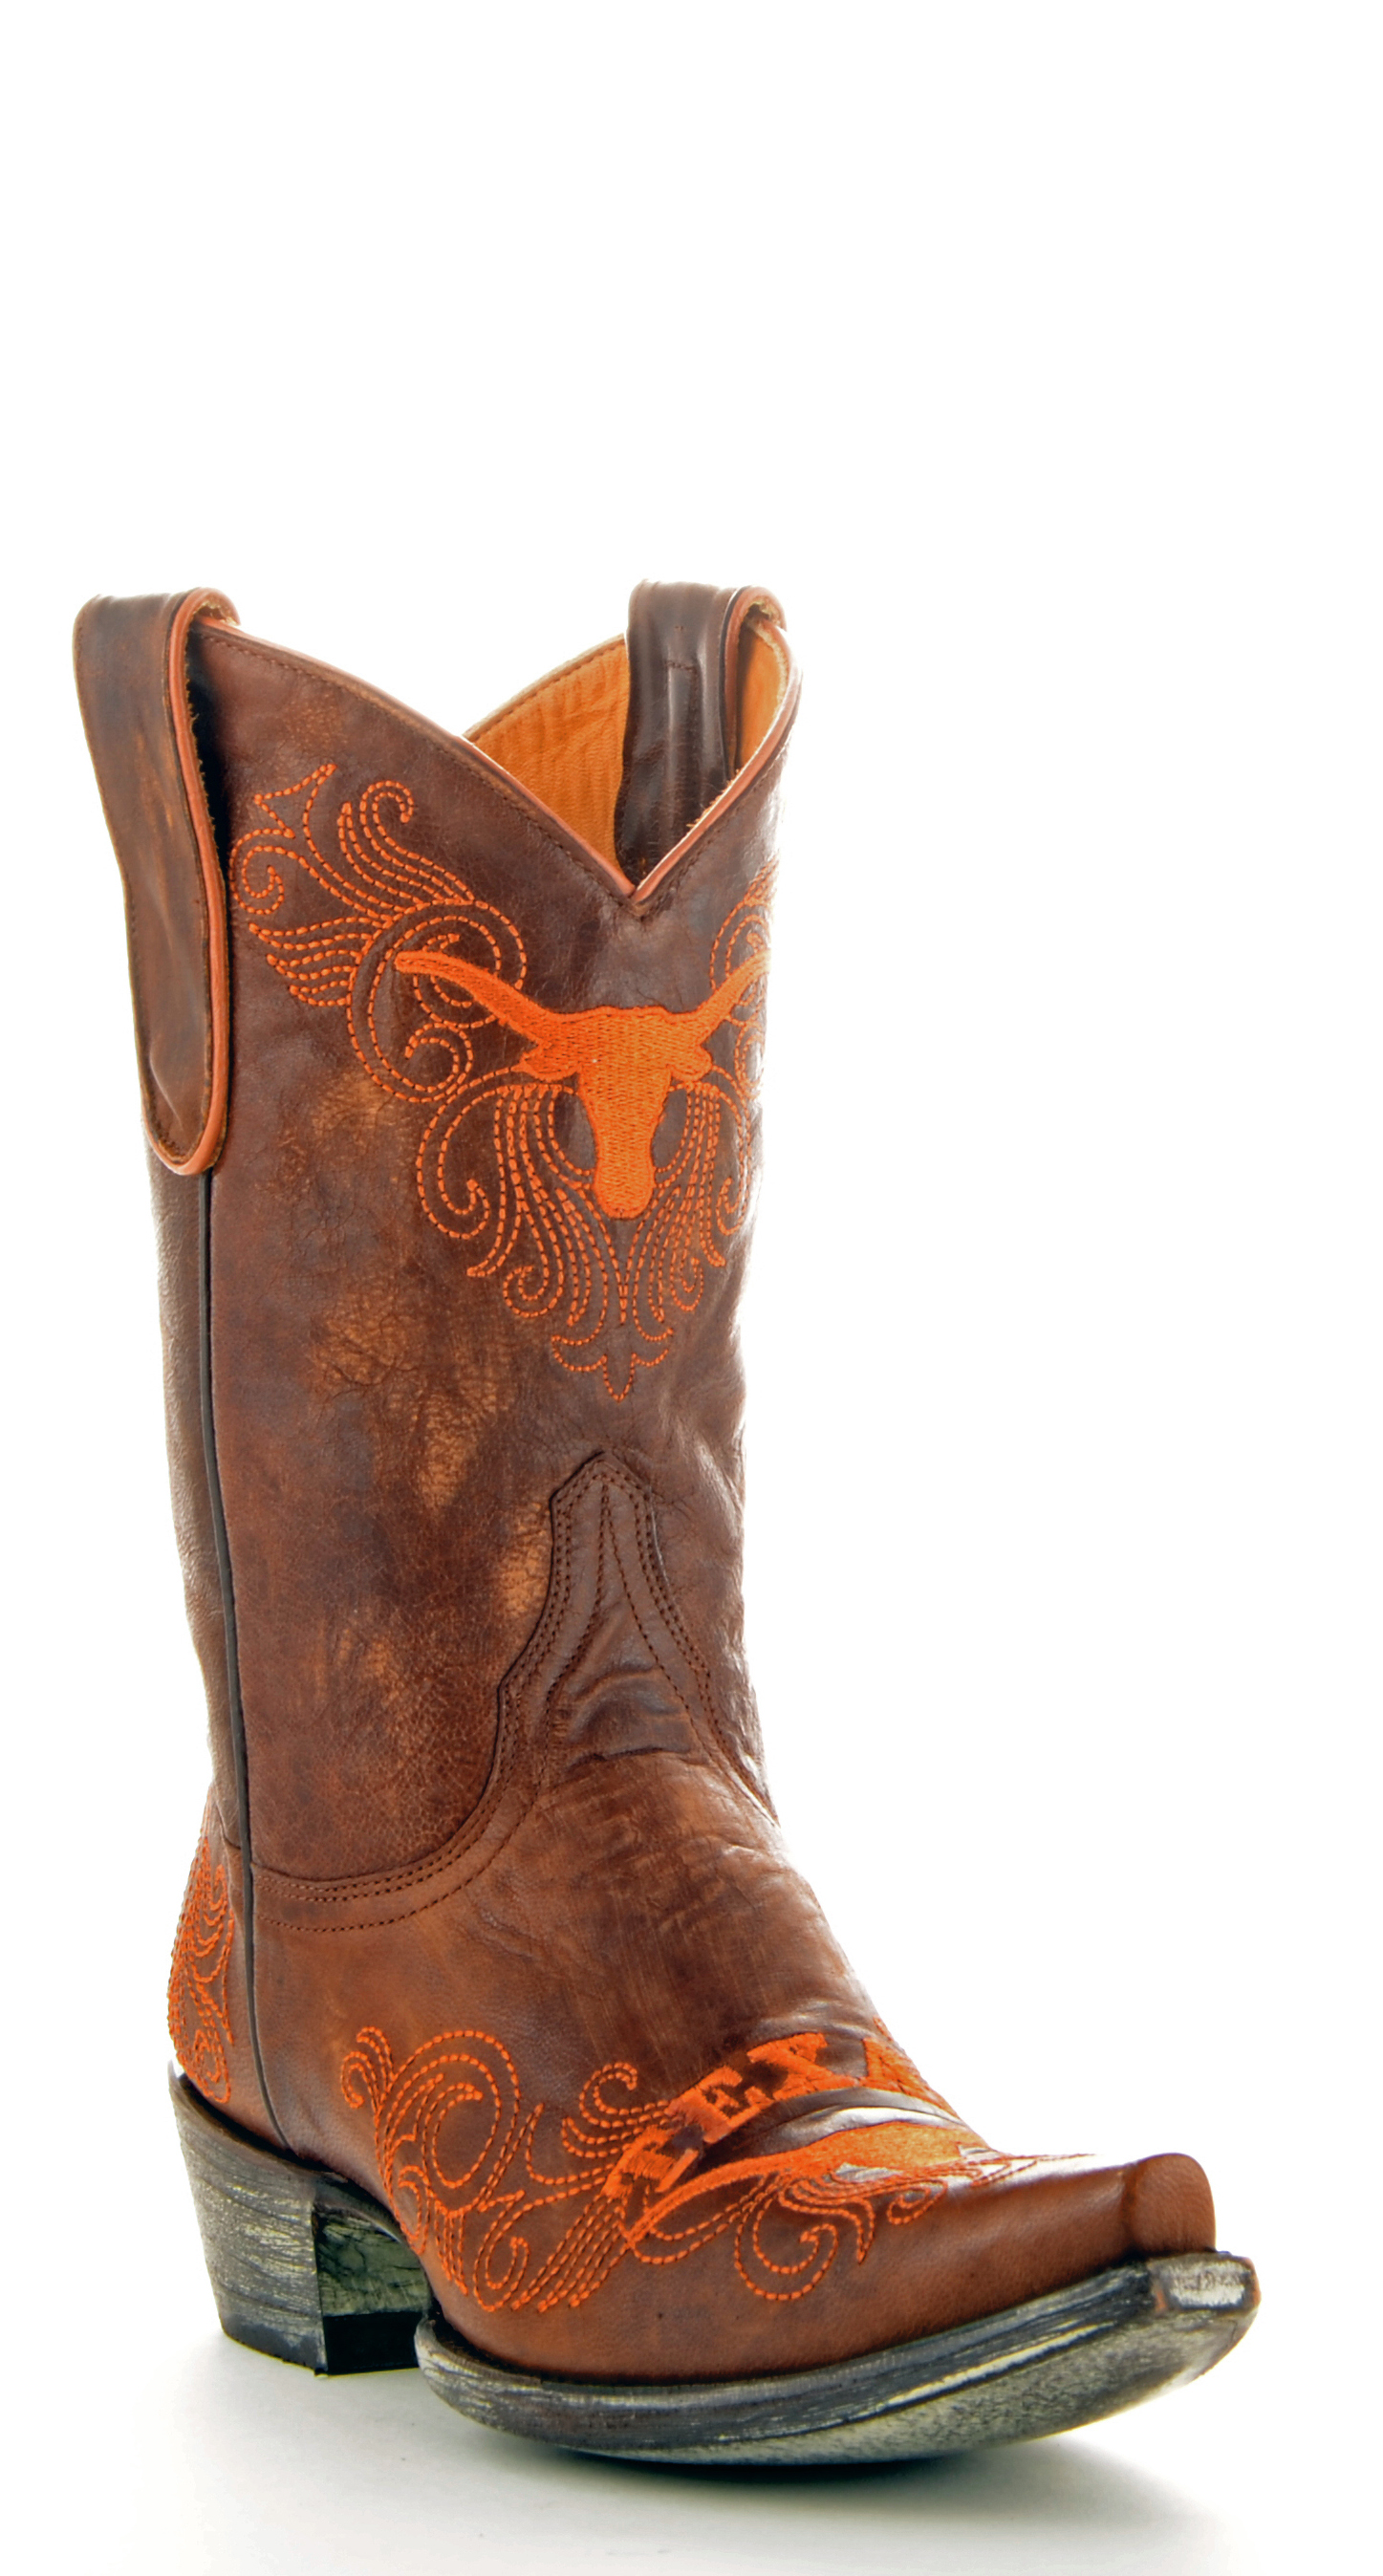 Gameday Boots Womens College Team Texas Longhorns Brass UT-L073-1 by Gameday Boots